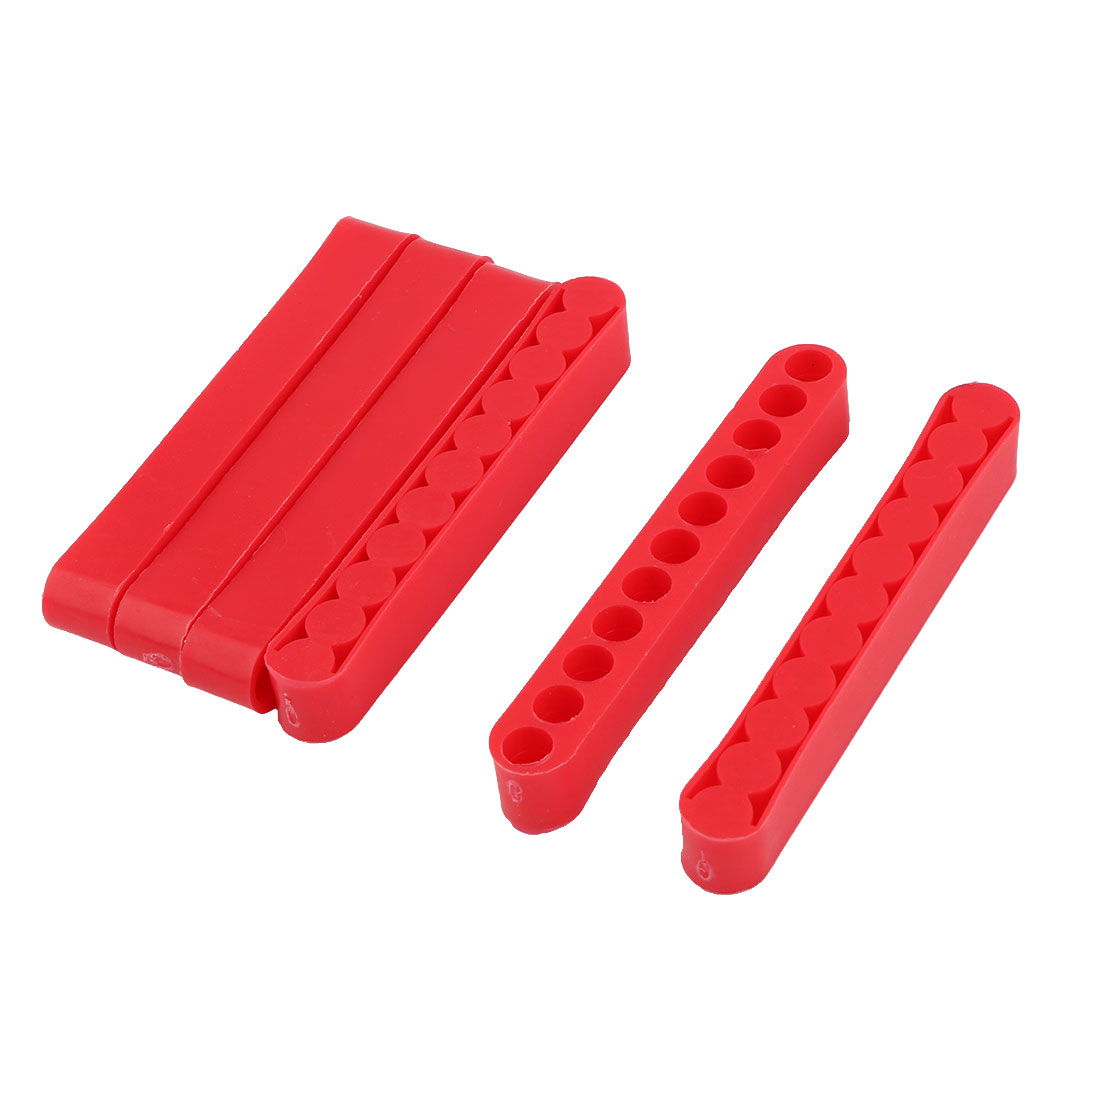 Home Plastic 11 Holes Screwdriver Head Bit Holder Red 8mm Inner Hole Dia 6pcs